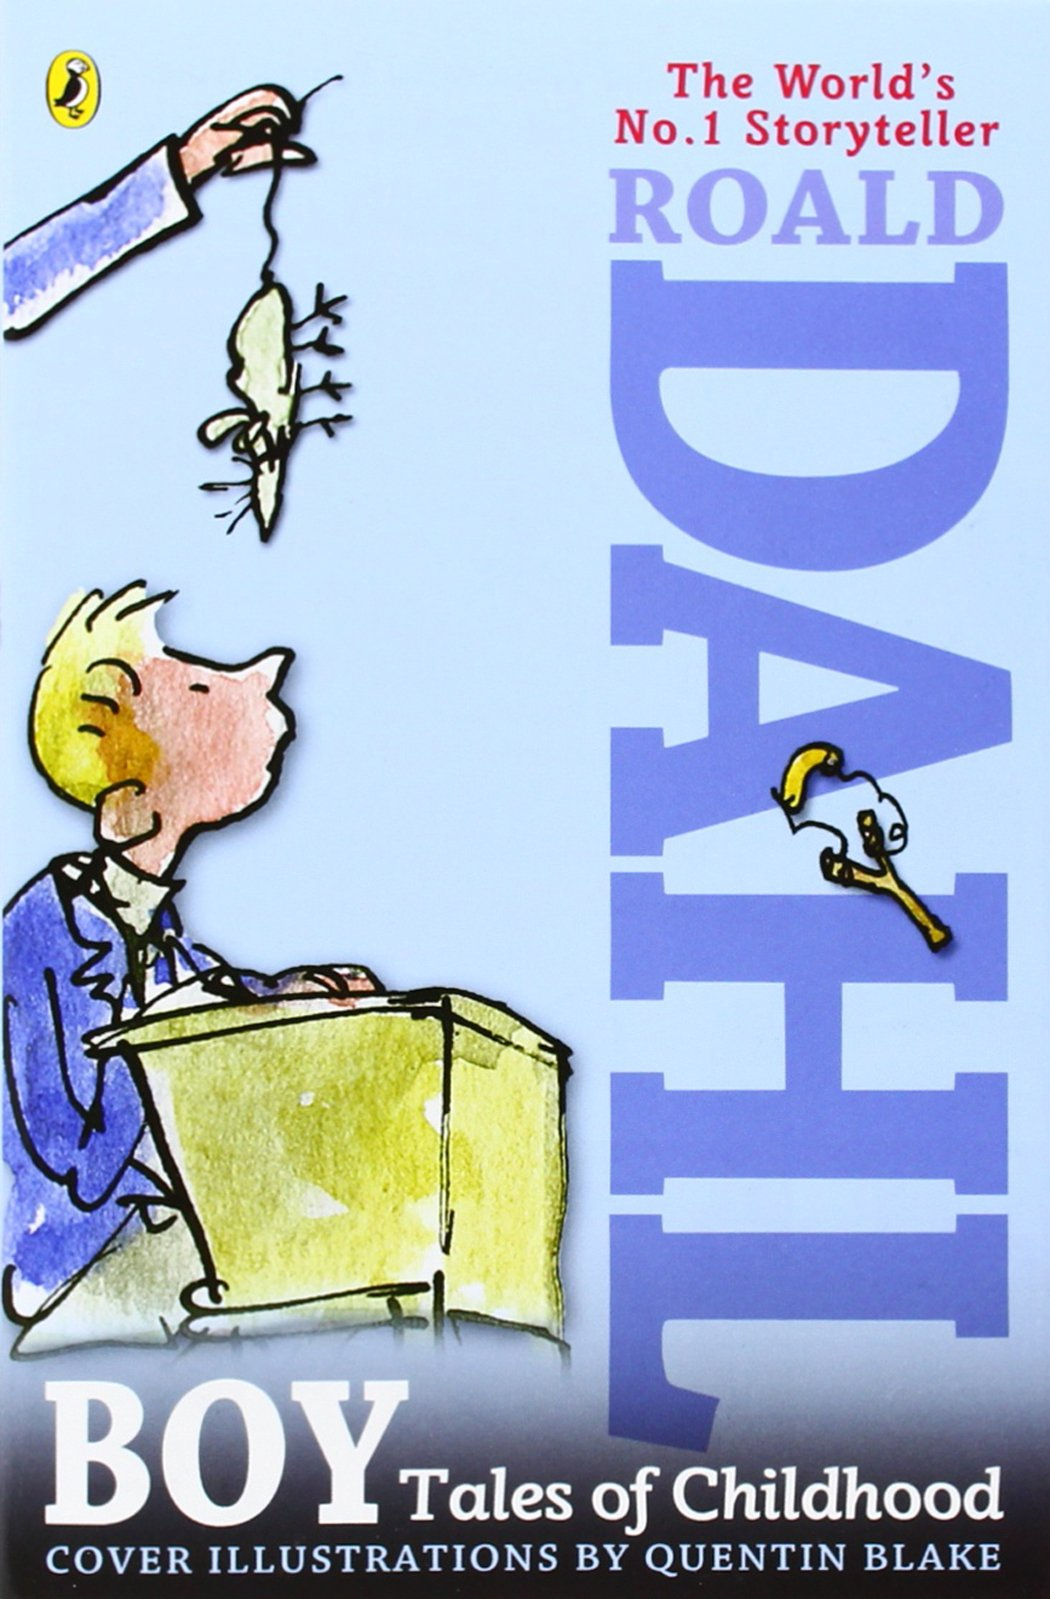 boy roald dahl essay questions Roald dahl's boy: tales of childhood is an interesting book it is about the eventful and adventurous childhood days of roald dahl  the book is written in a simple language, which makes this a good read, a delightful memoir.